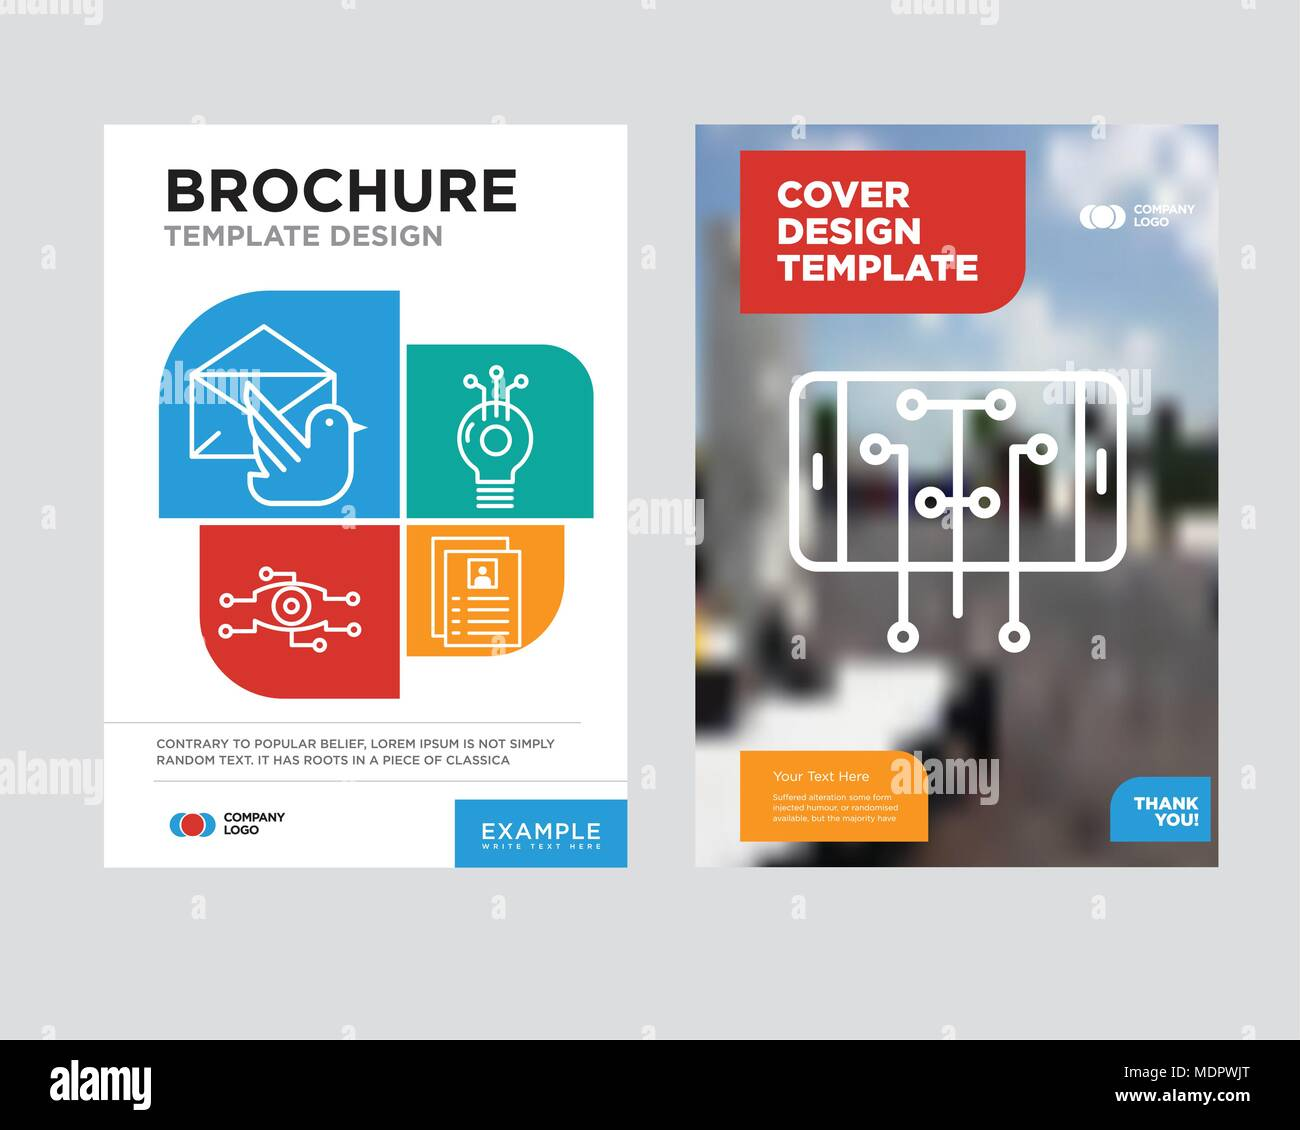 smartphone brochure flyer design template with abstract photo background flyer idea analysis mail bird minimalist trend business corporate roll up